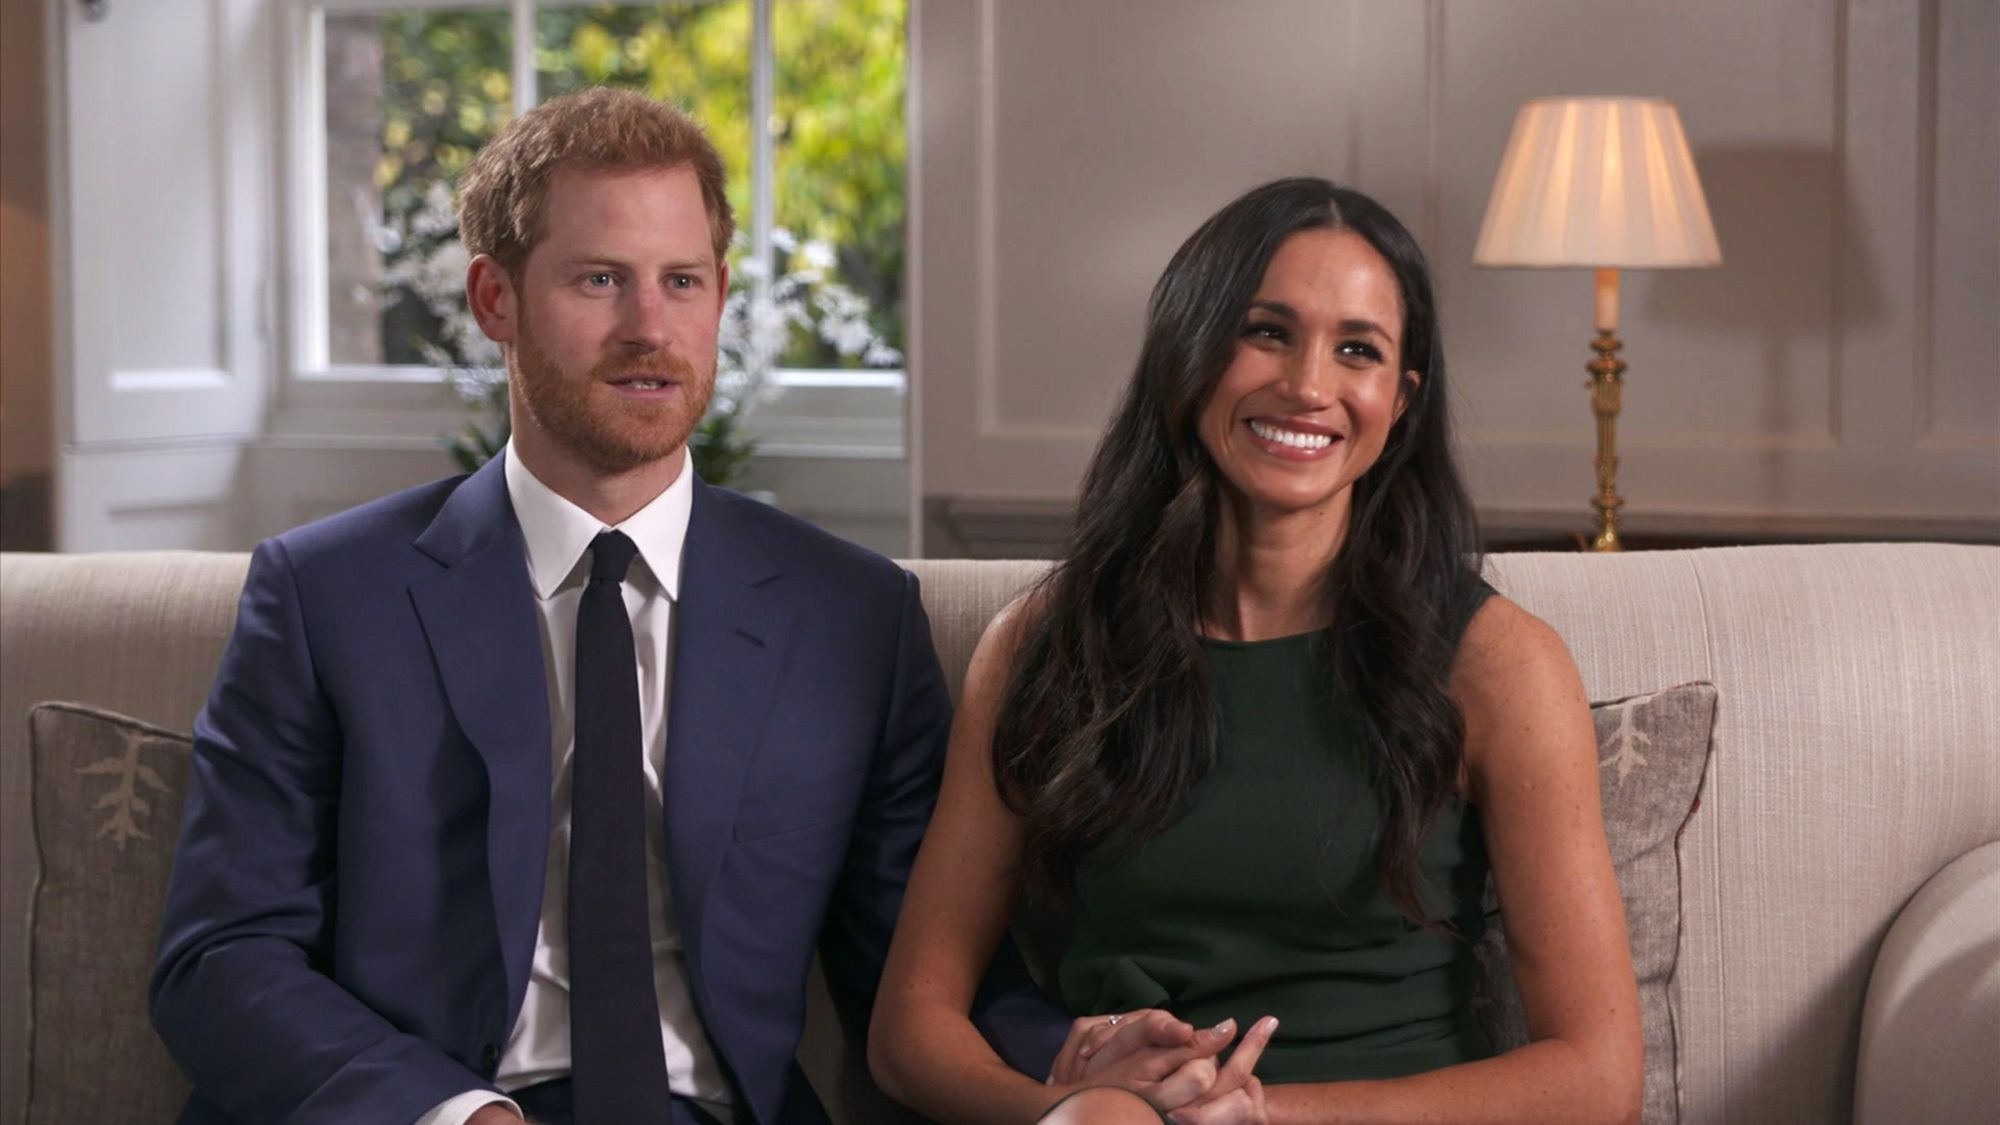 We ask Londoners about Prince Harry and Meghan Markle. Their responses may surprise you